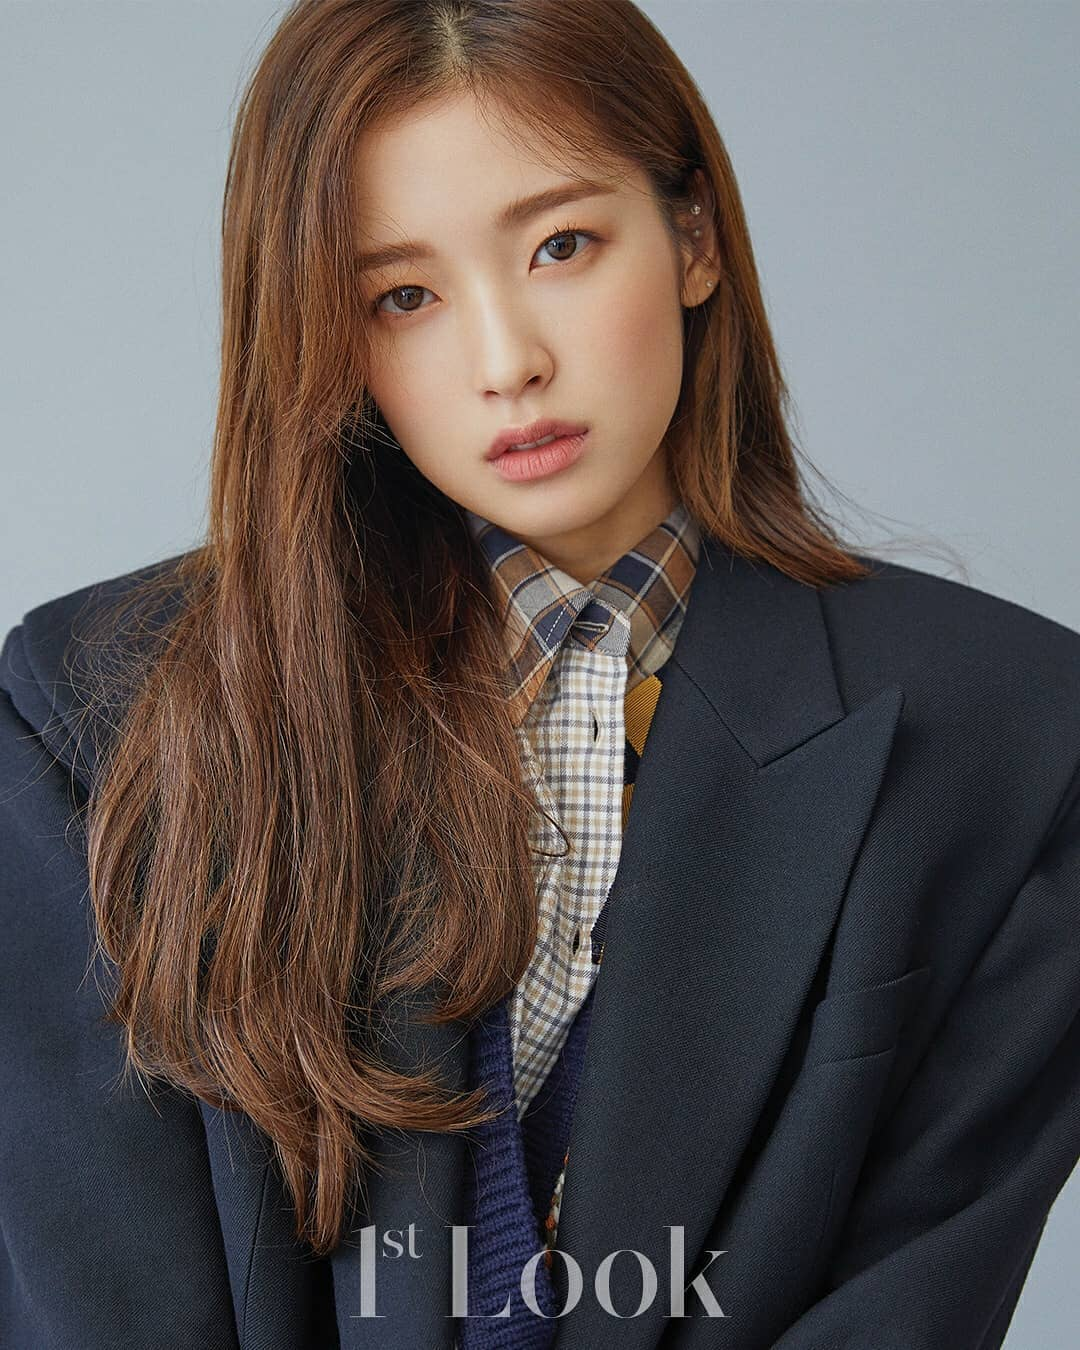 Arin (Kissing You Member) Age, Bio, Wiki, Facts & More